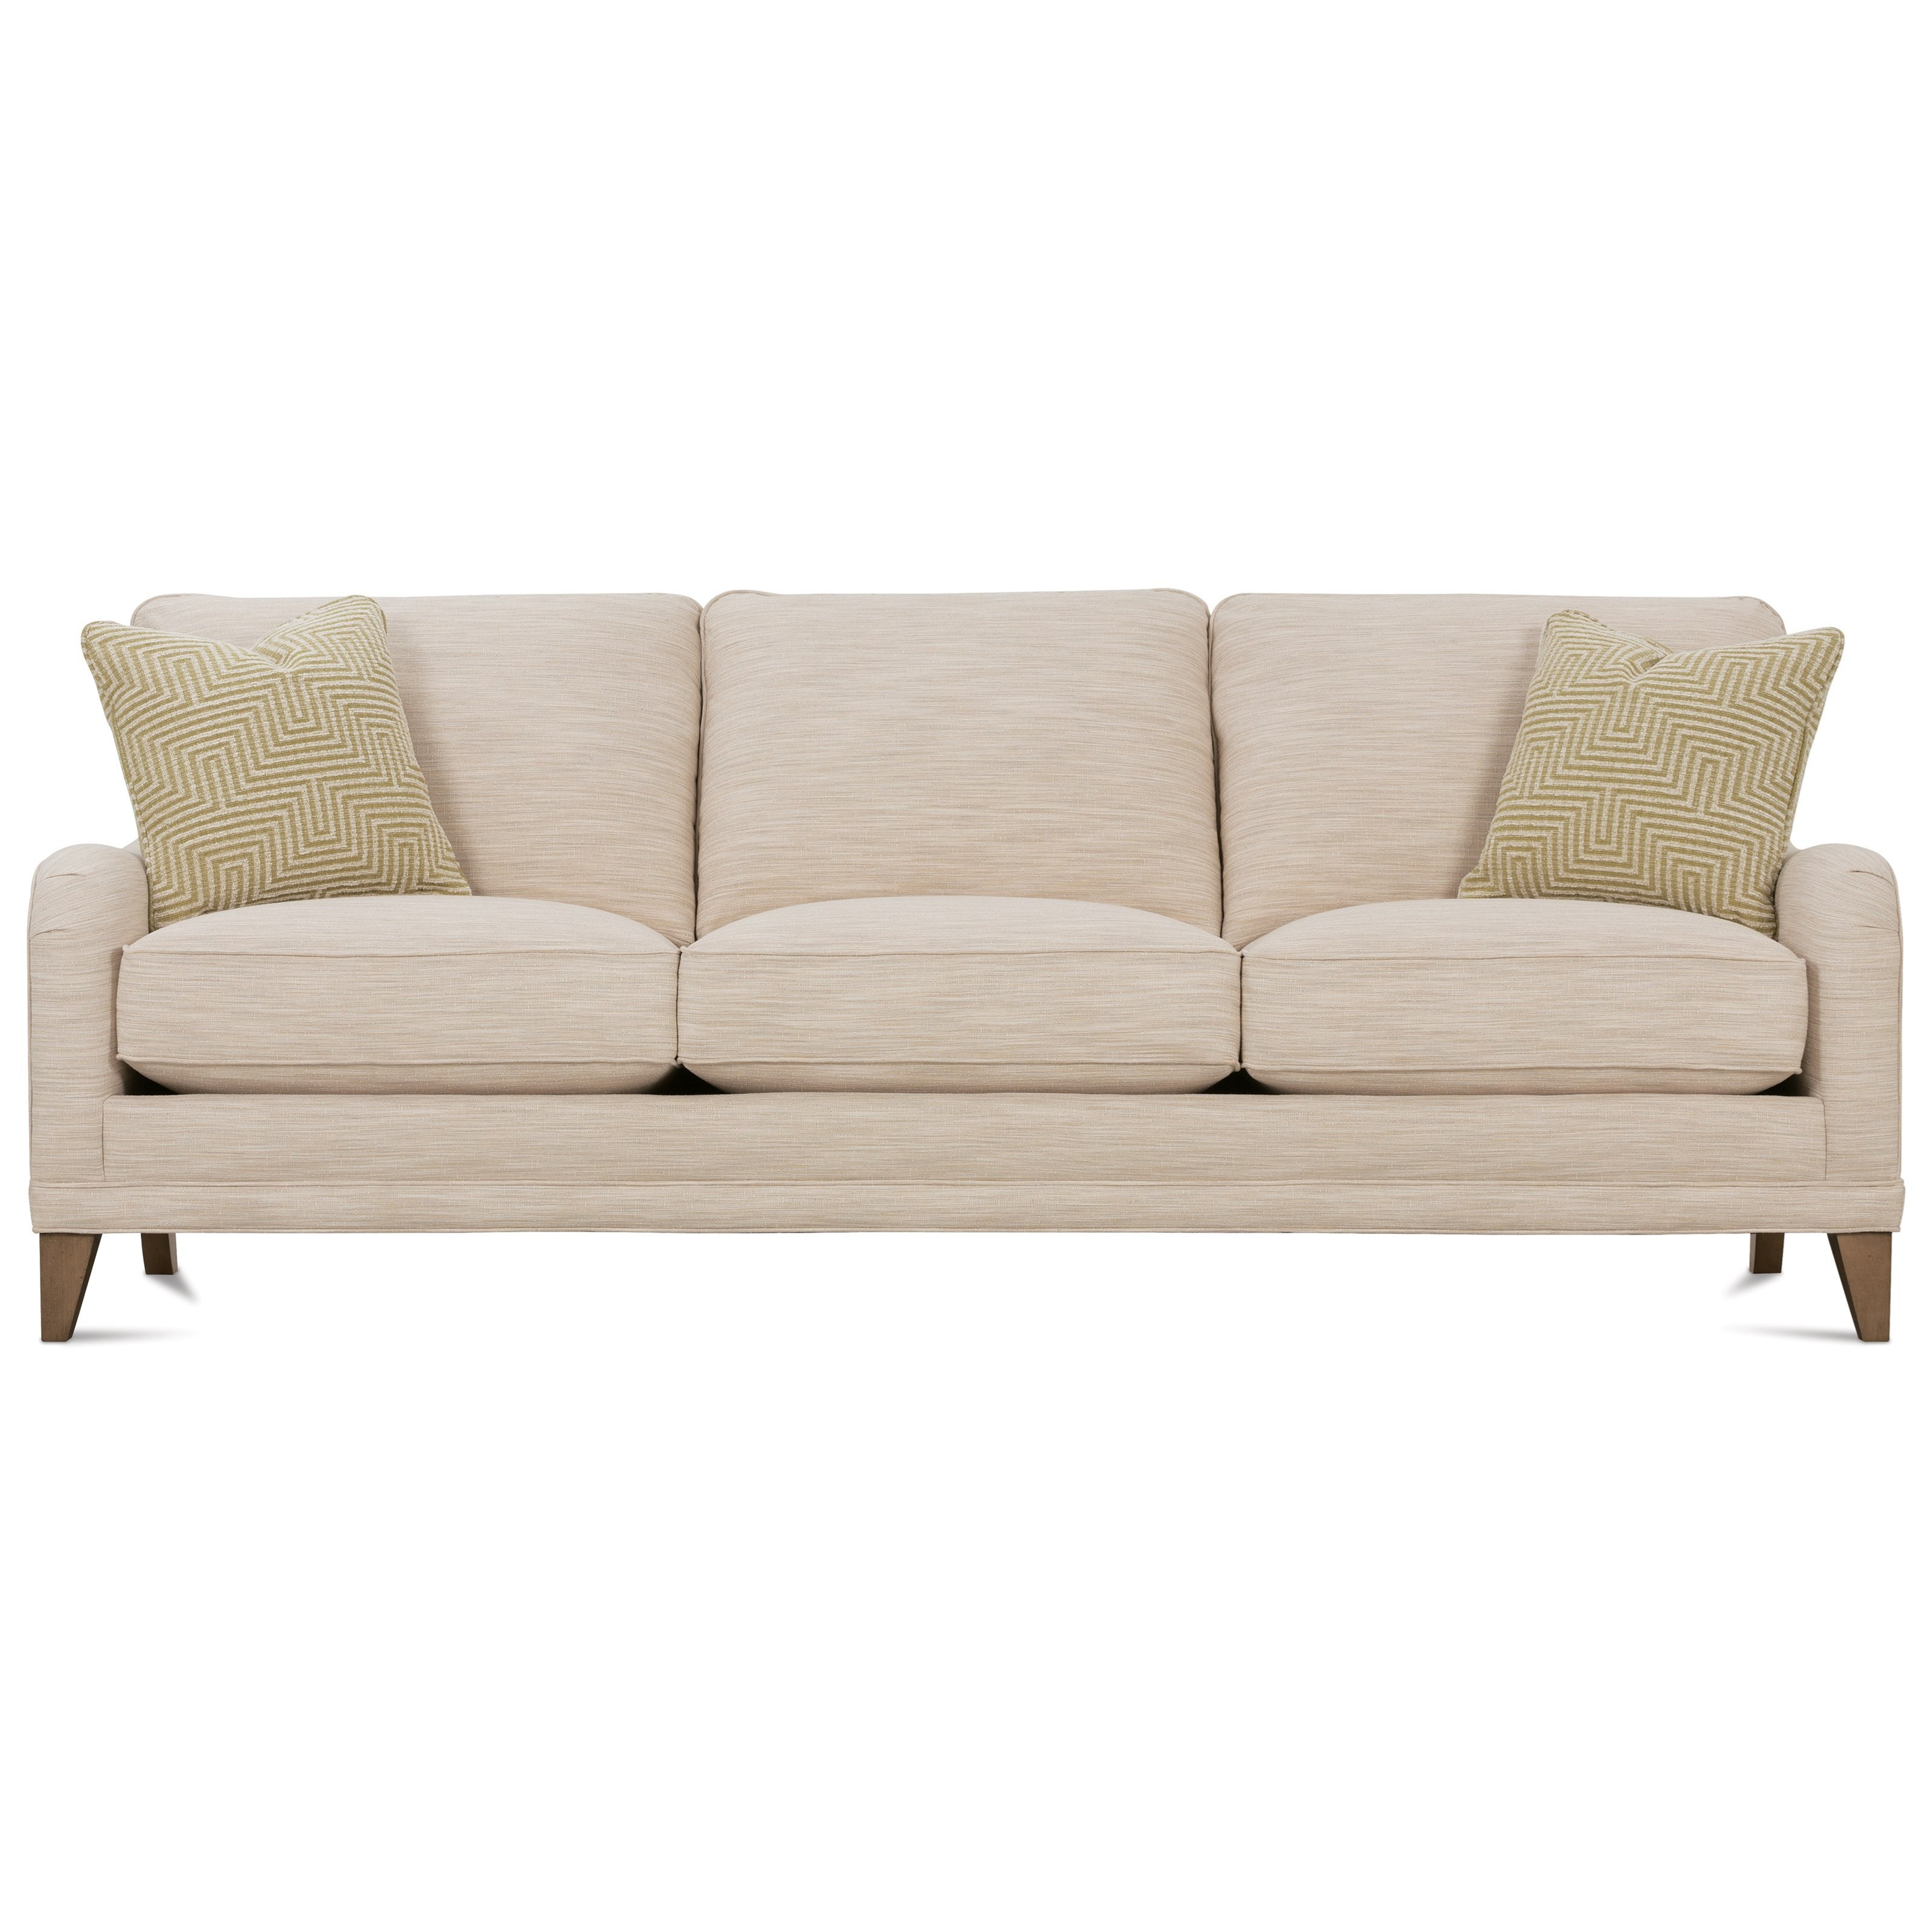 My Style II Customizable Sofa by Rowe at Baer's Furniture